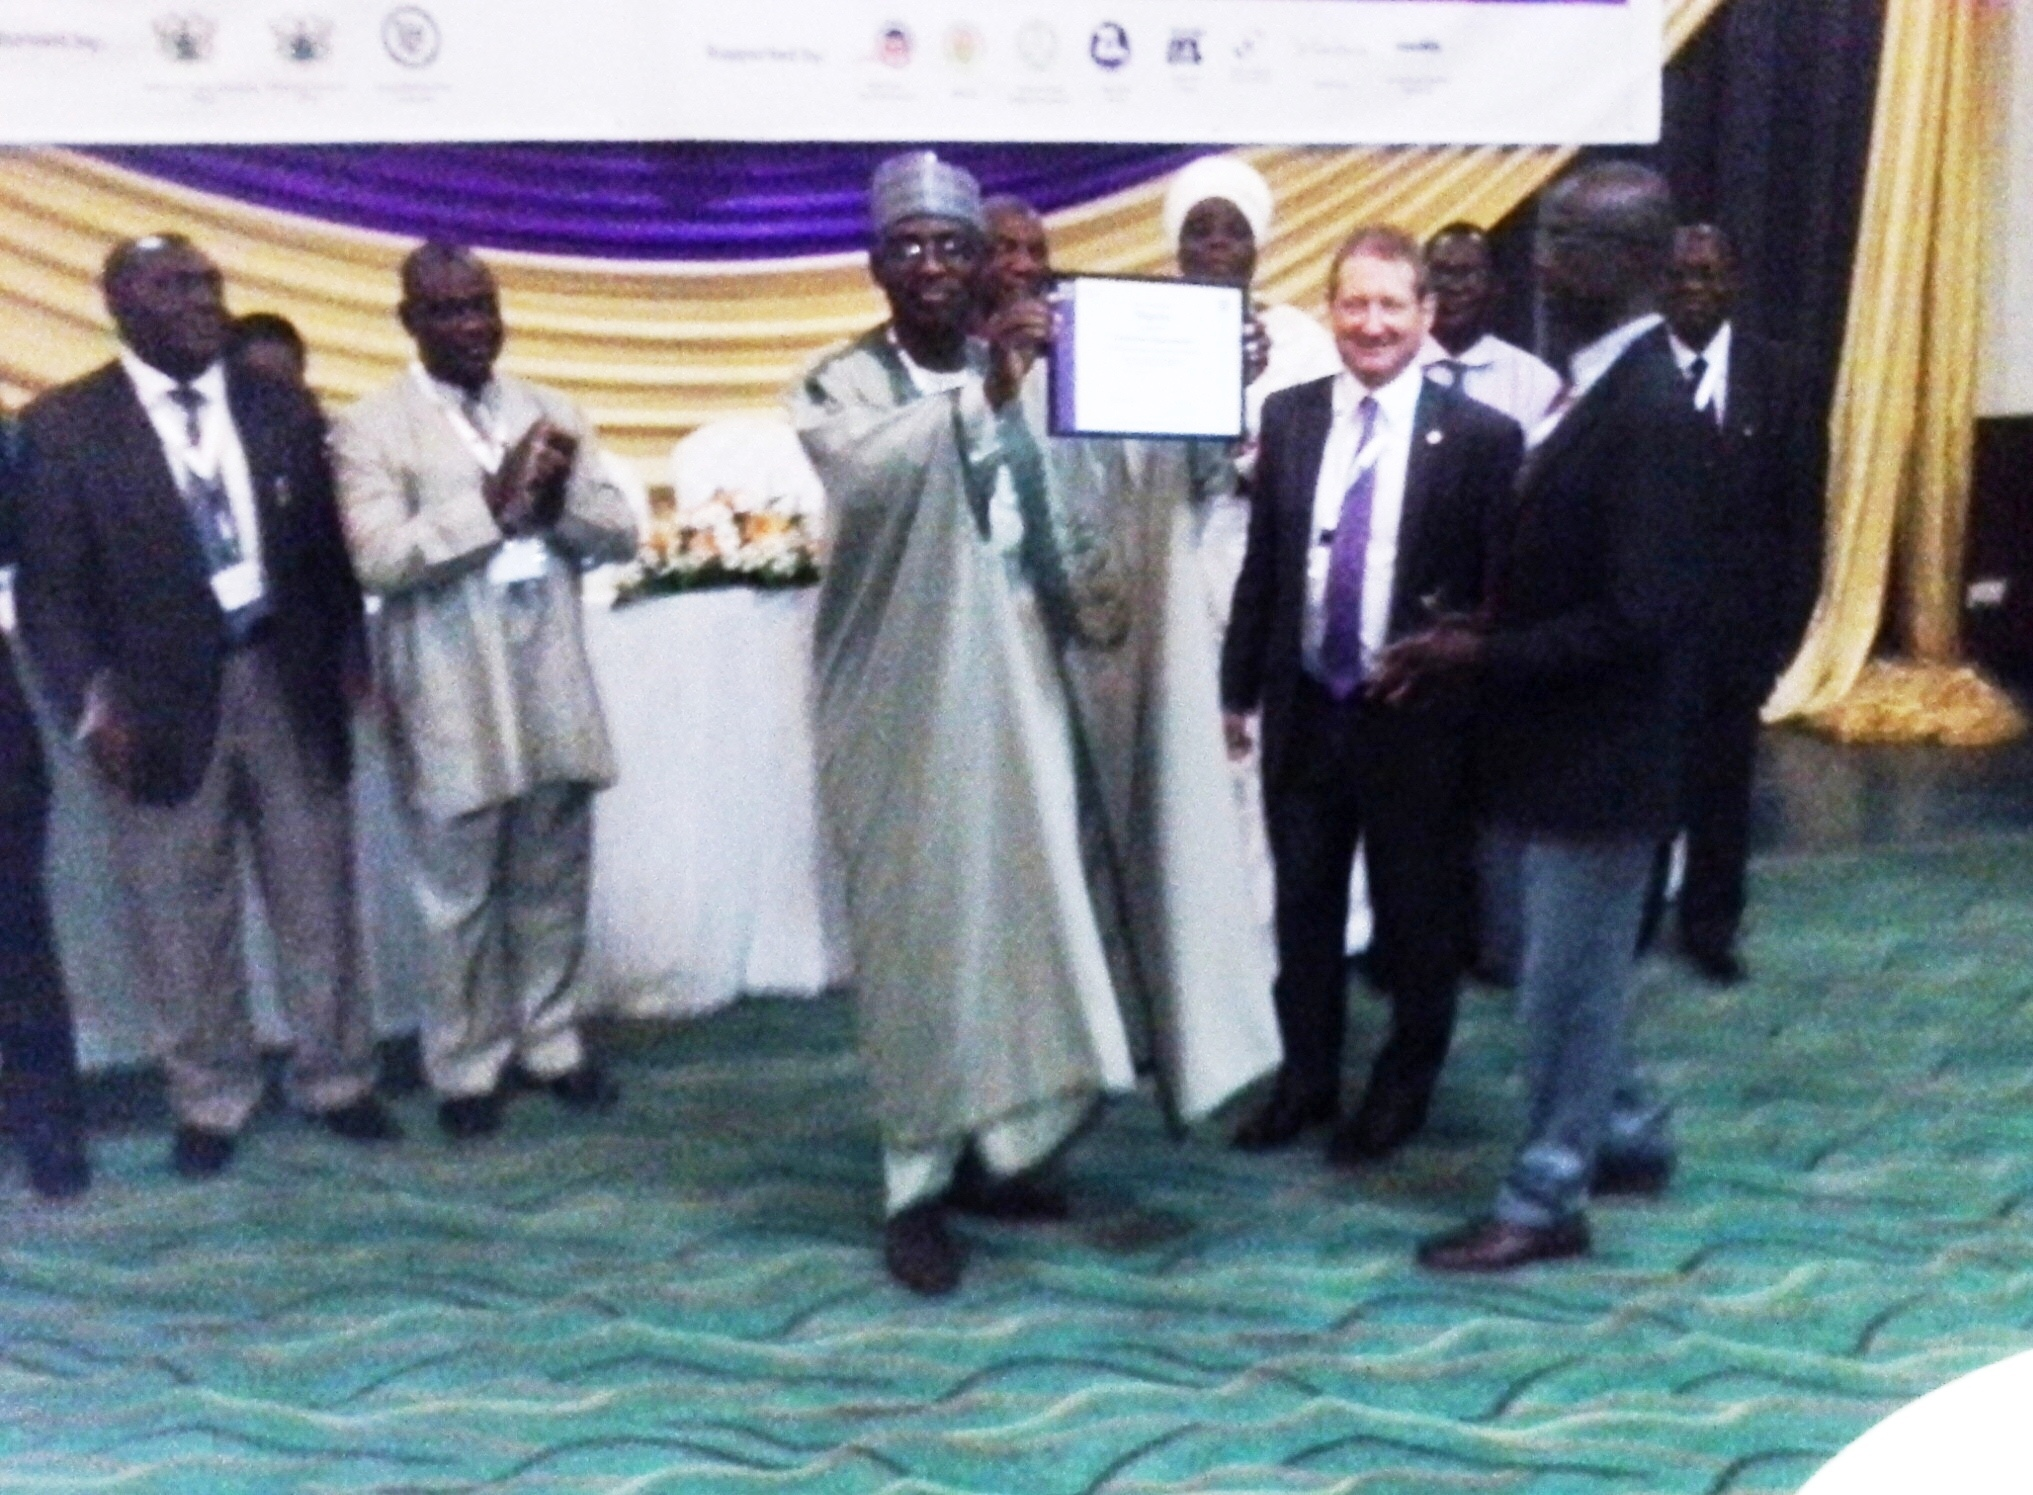 maj-gen-ut-usman-rtd-nat-president-ciltn-displaying-the-territorial-organization-certificate-to-delegates-the-forum